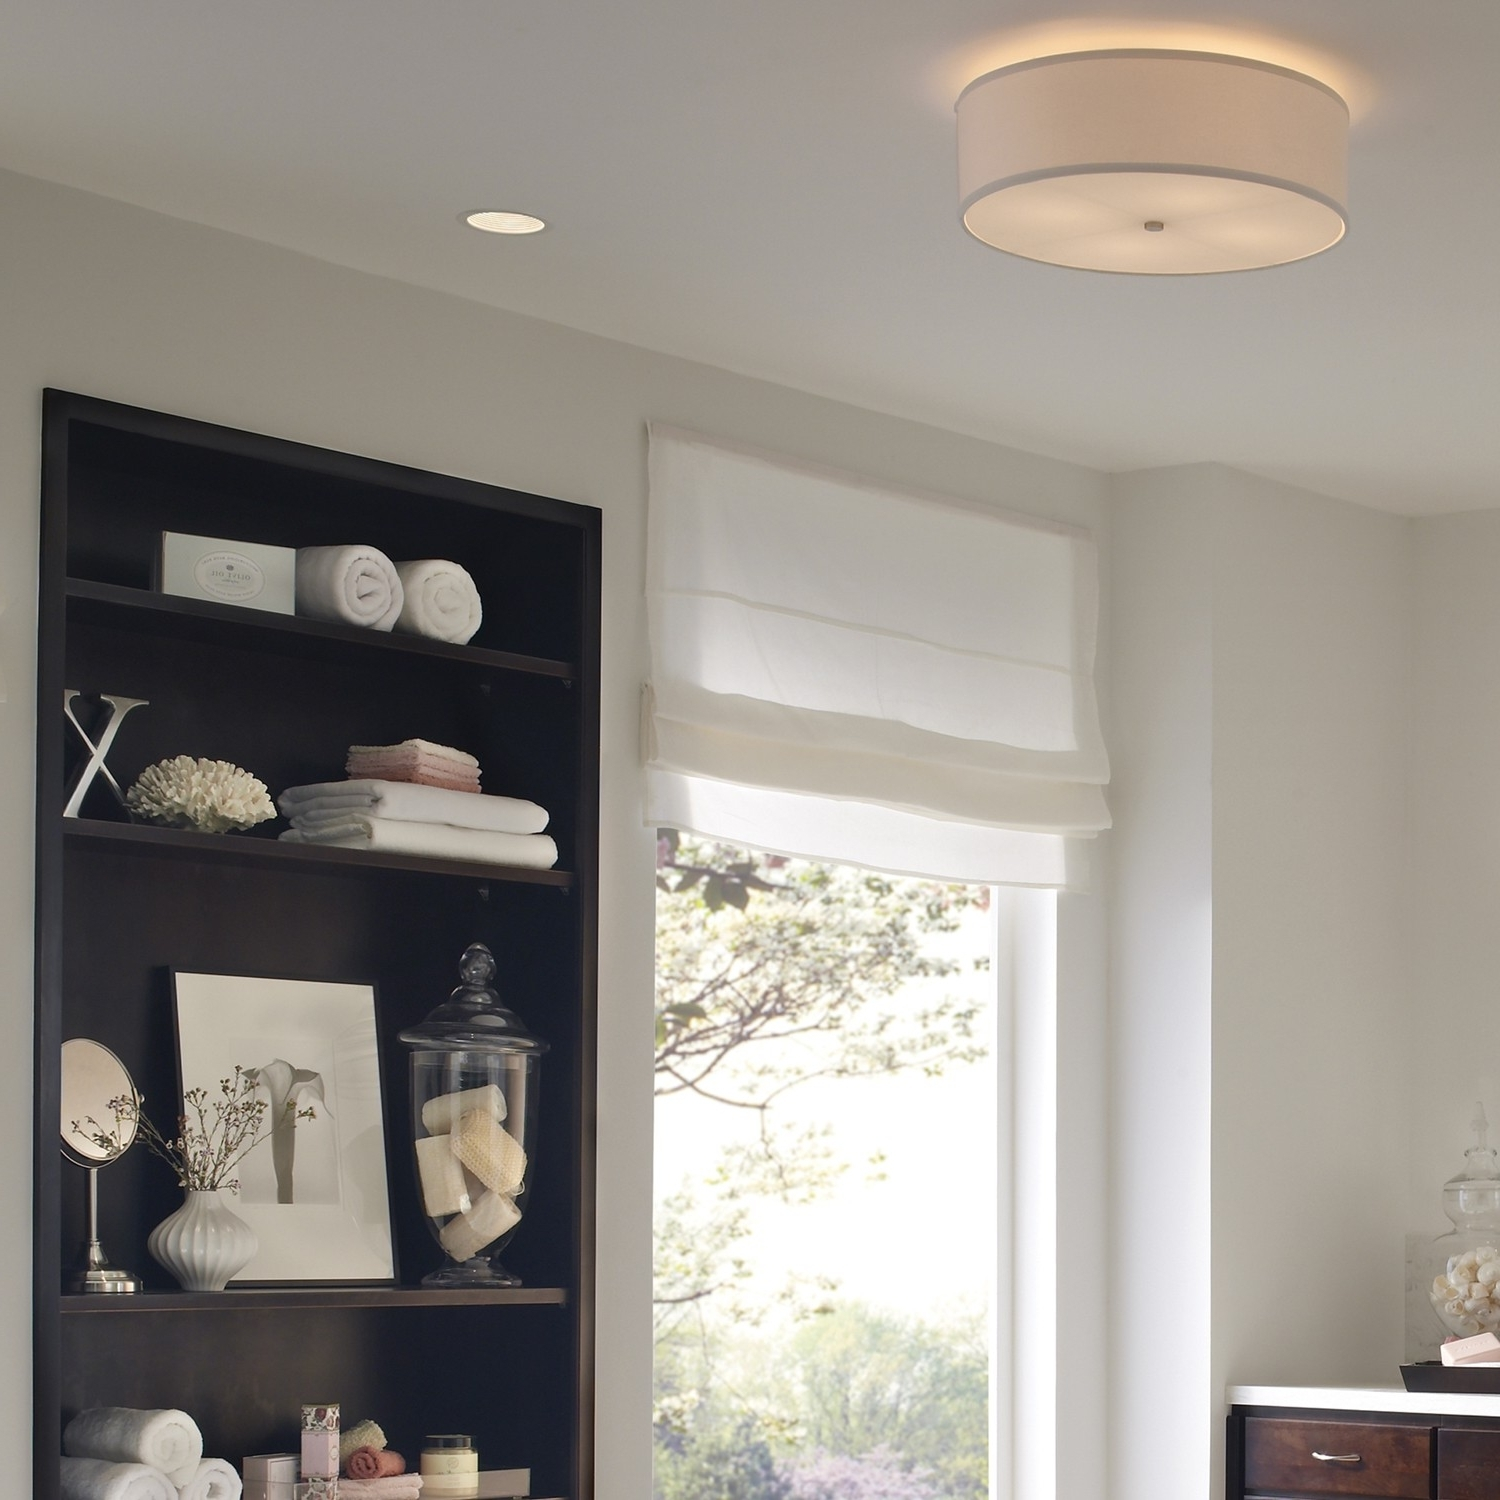 Trendy Dramatic Lighting For Low Ceilings (View 20 of 20)